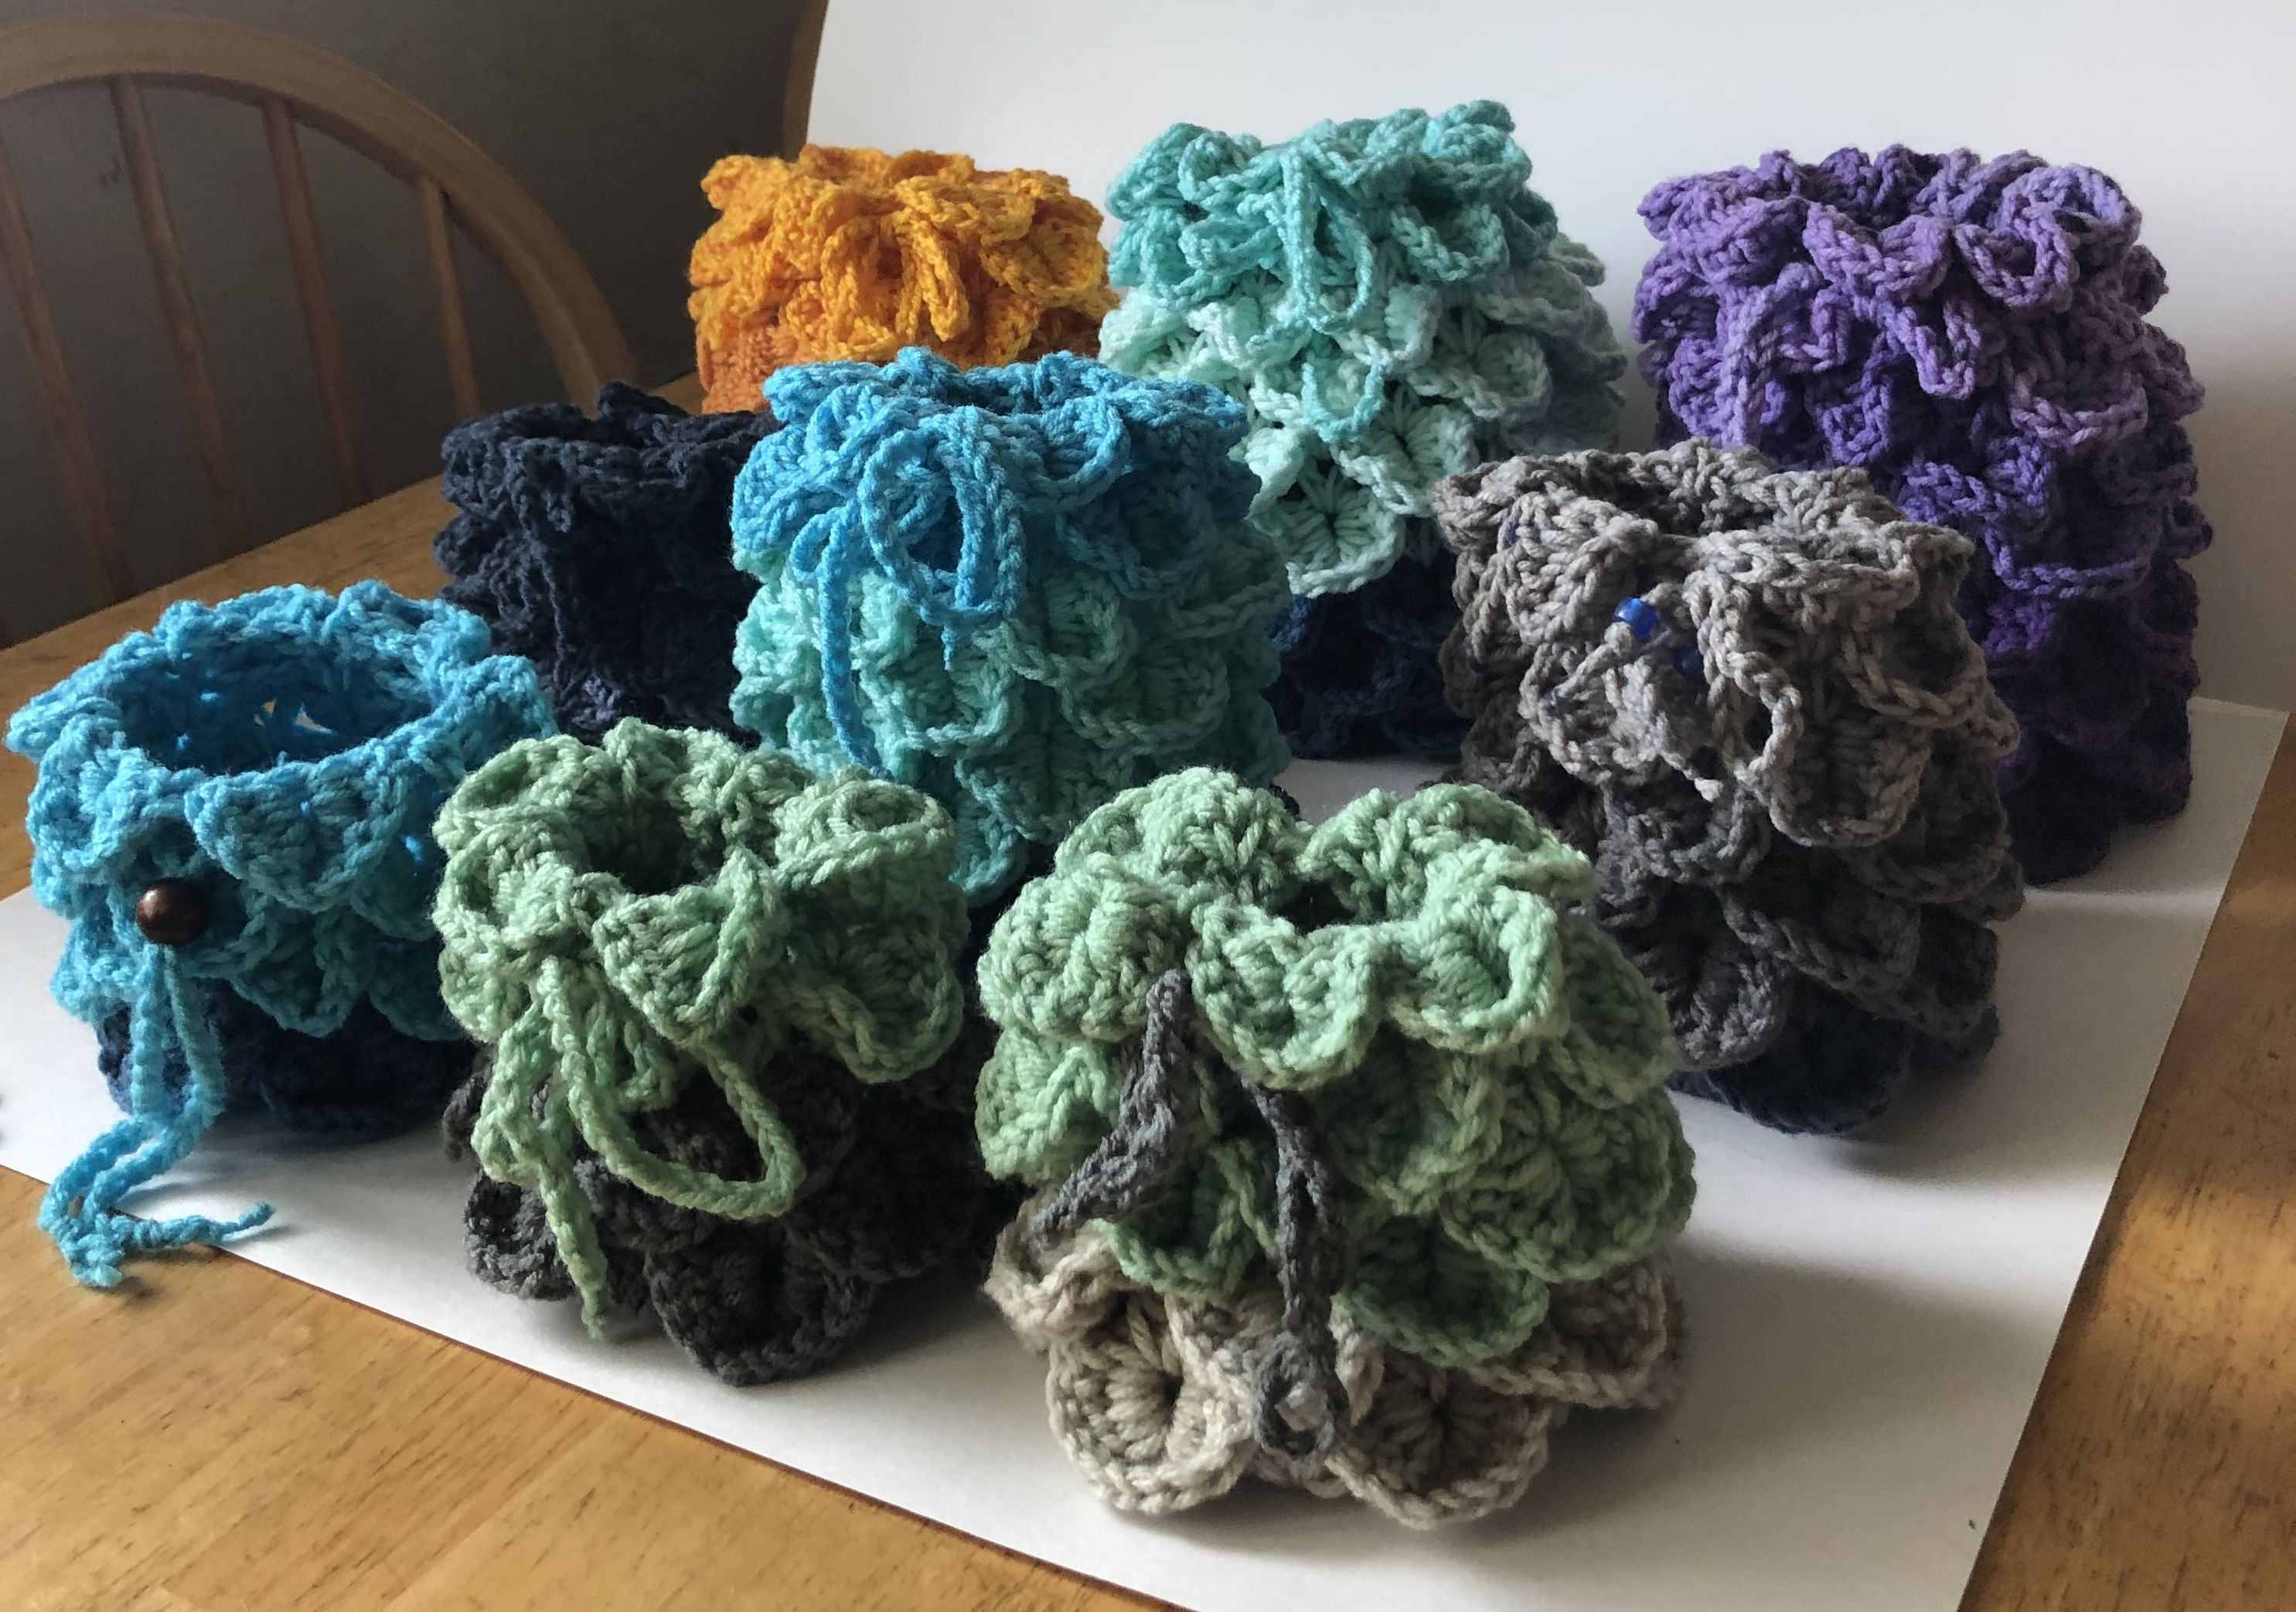 All 9 Dragon Egg Dragon Scales Crocheted Dice Bags great for Dungeons and Dragons, role play and table top gaming! Use for gaming, cosplay or to hold your treasures.  #dragonegg #dragonscales #dnd  #rpg #dungeonsanddragons #dicebag #dicebags #tabletopgaming #tokenpouches #roleplaygames #handmade #crochetedbags #crochetersofinstagram #etsyseller #geektasticcreations #geekgirl #geekystuff #geeklife #roll20dnd #criticalrole #dungeonmaster